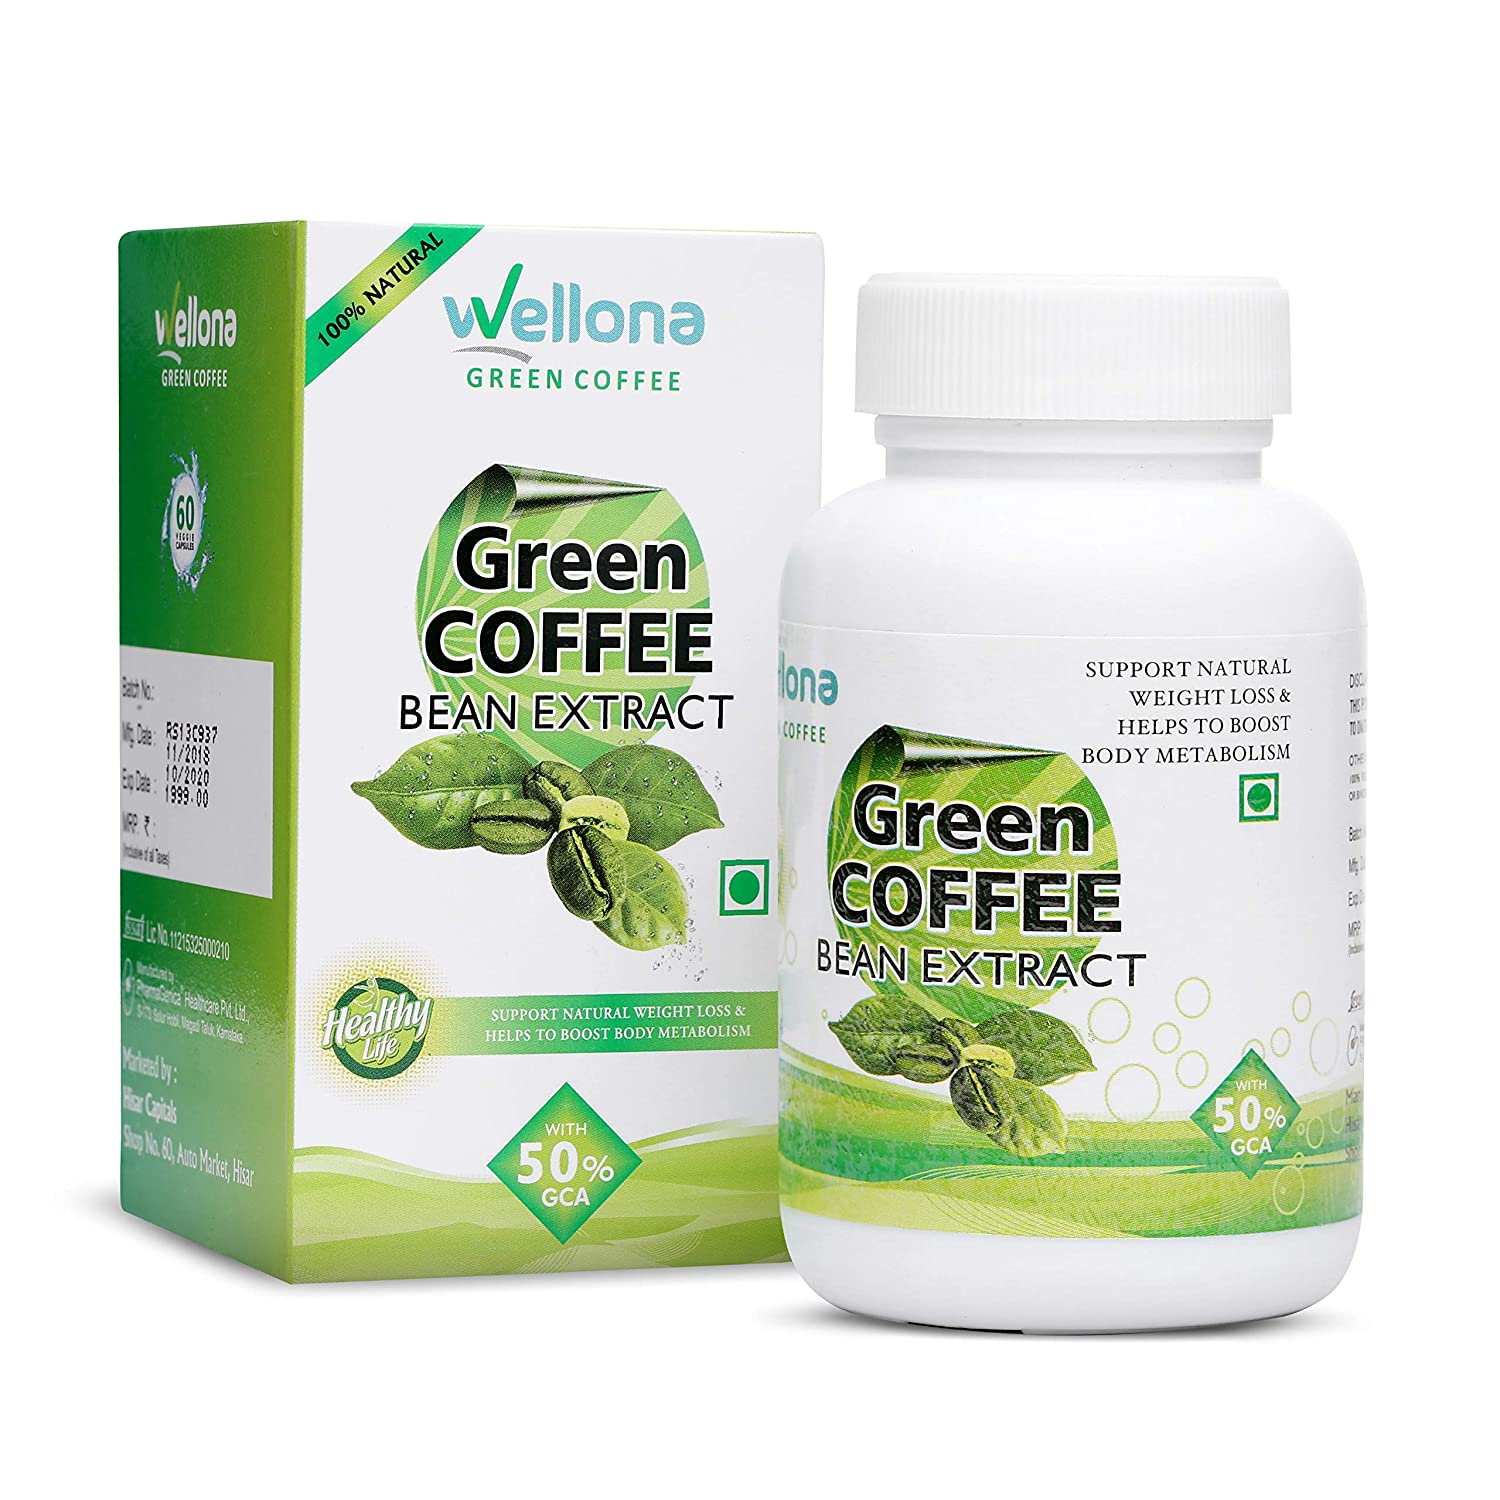 Wellona Green Coffee Bean Extract Weight Management Supplement for Men and  Women (800 Mg) - 60 Capsules: Amazon.in: Health & Personal Care